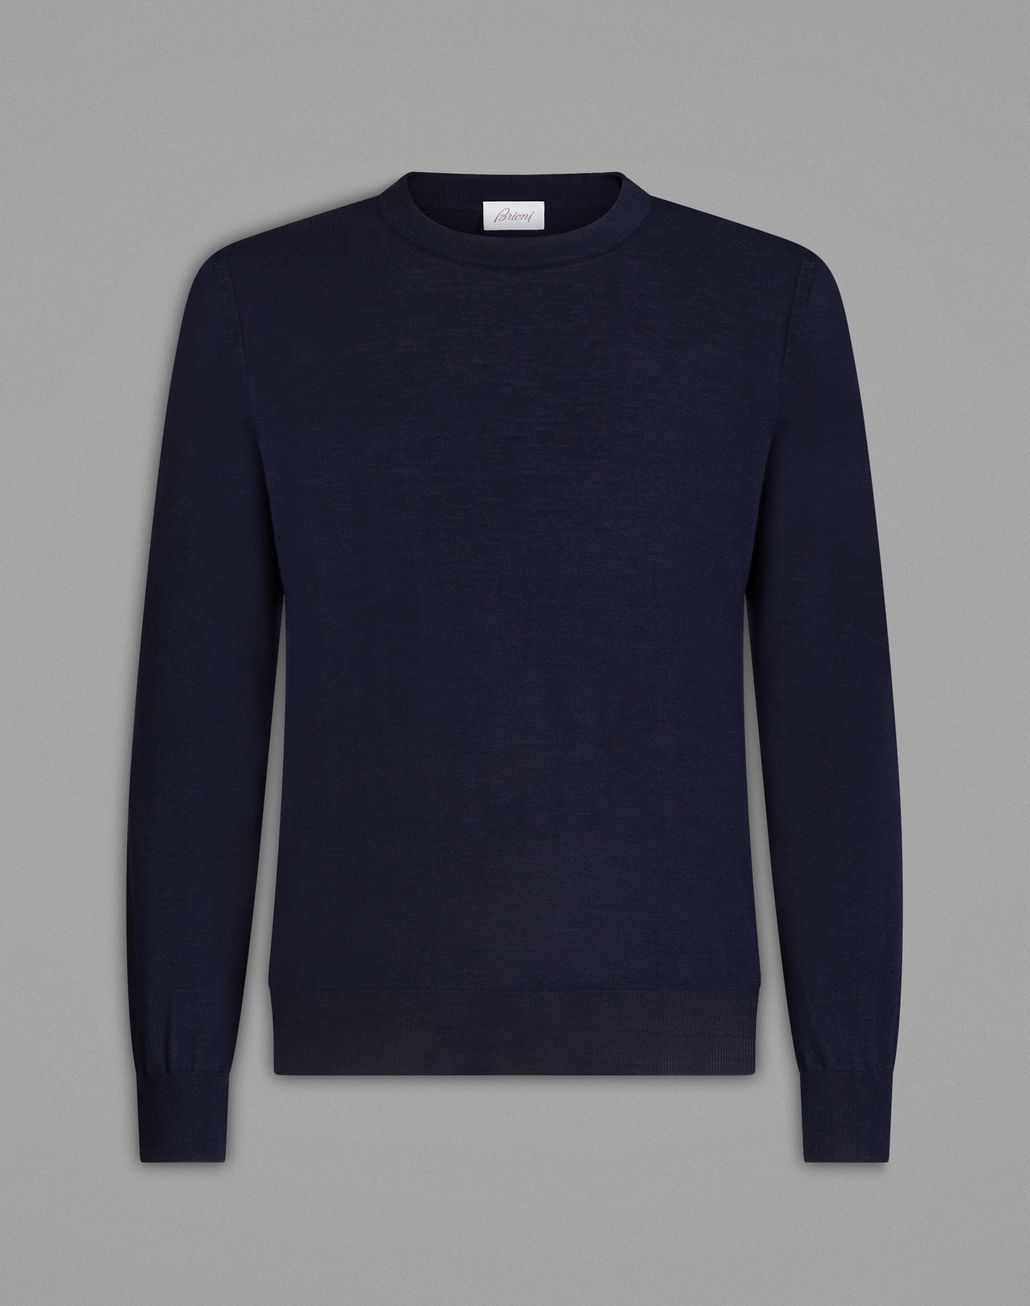 BRIONI 'Essential' Navy Blue Crew-Neck Sweater Knitwear Man f